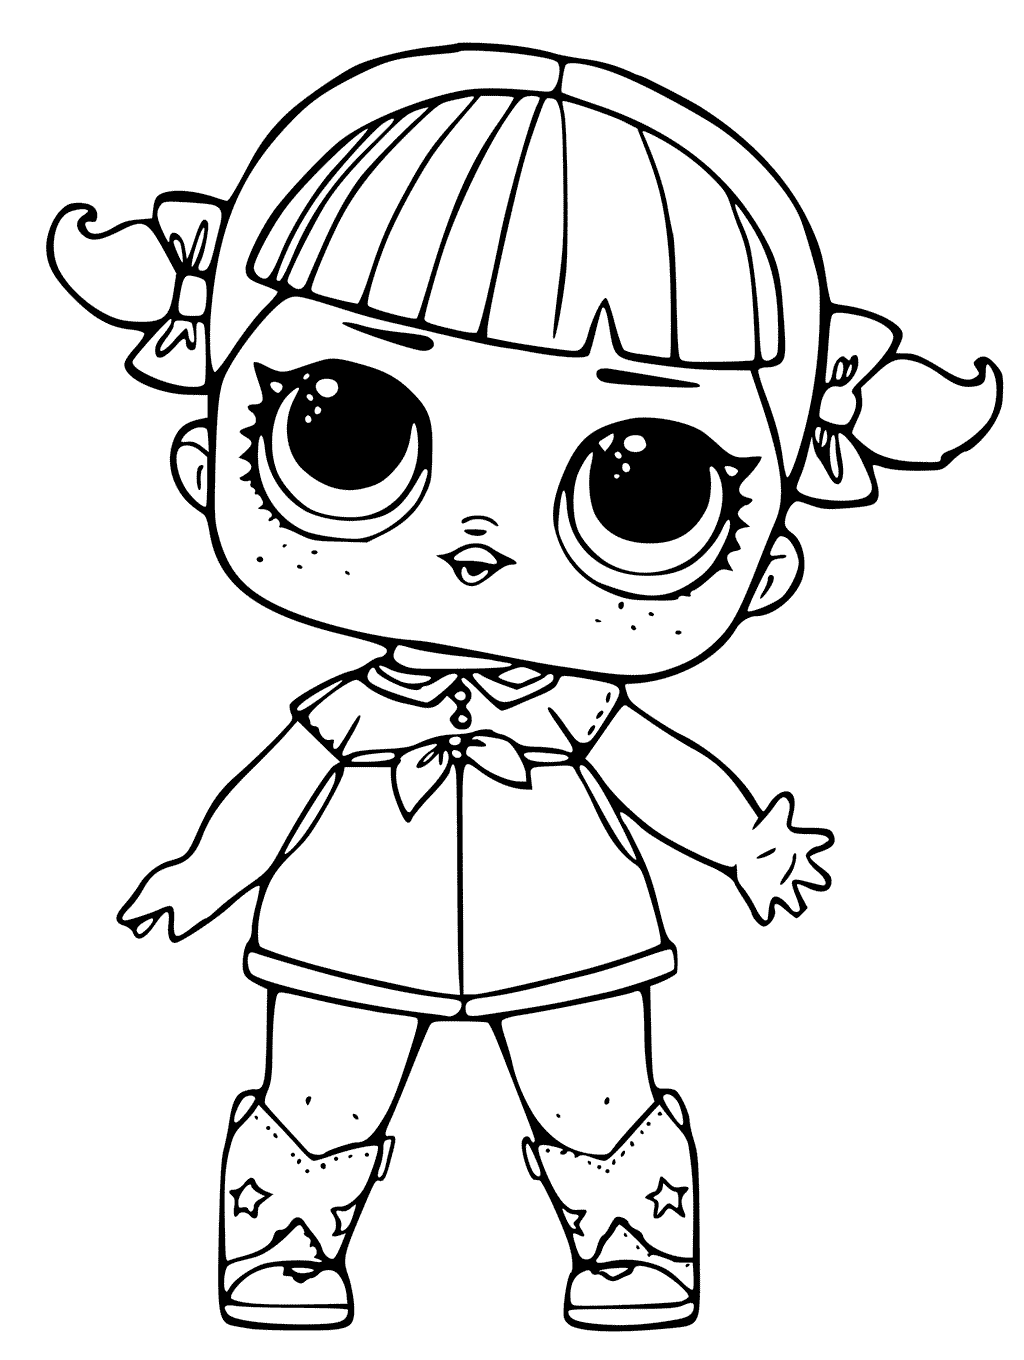 coloring picture lol lol doll coloring pages coloringrocks lol coloring picture